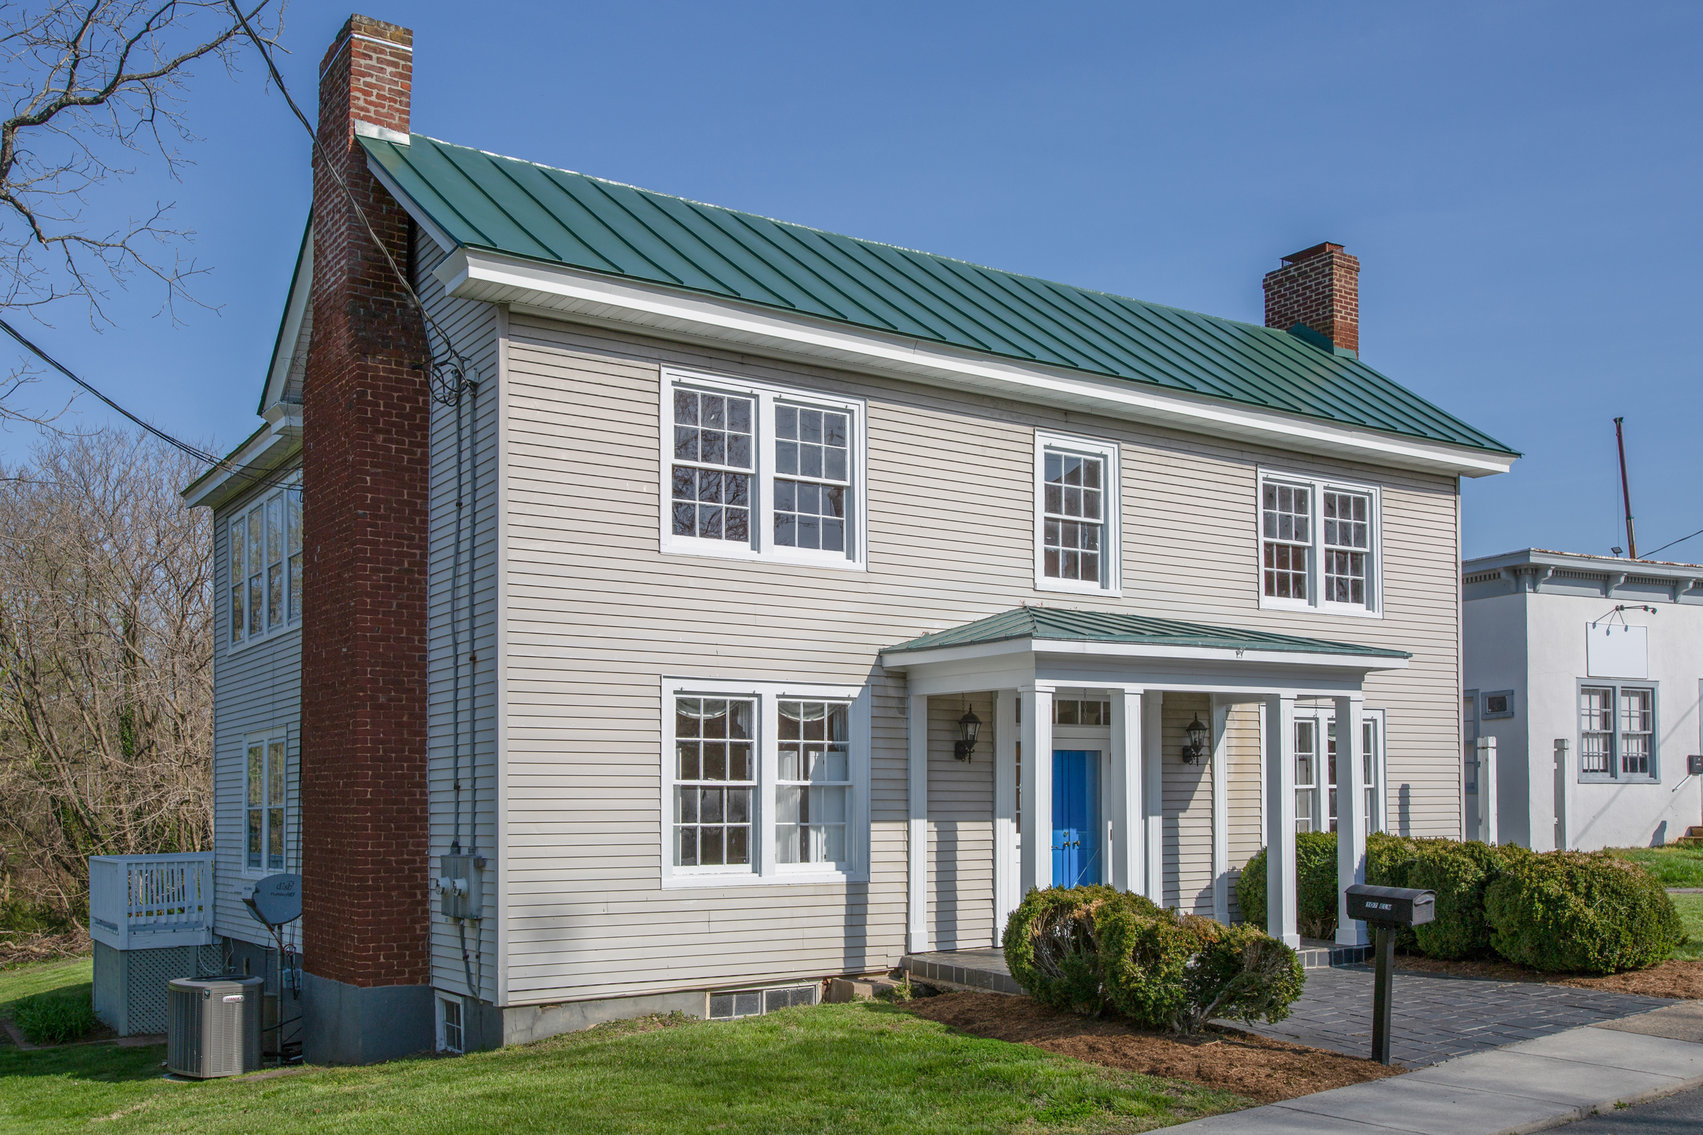 Image for 107 and 109 Elm Ave., Louisa, VA -- 8 Room/2 BA Home/Office Building (Circa 1859) on .277± Acres in Downtown Louisa, VA and 9 Room/2 Half Bath Home/Office Building (Circa 1905) on .50± Acres in Downtown Louisa, VA